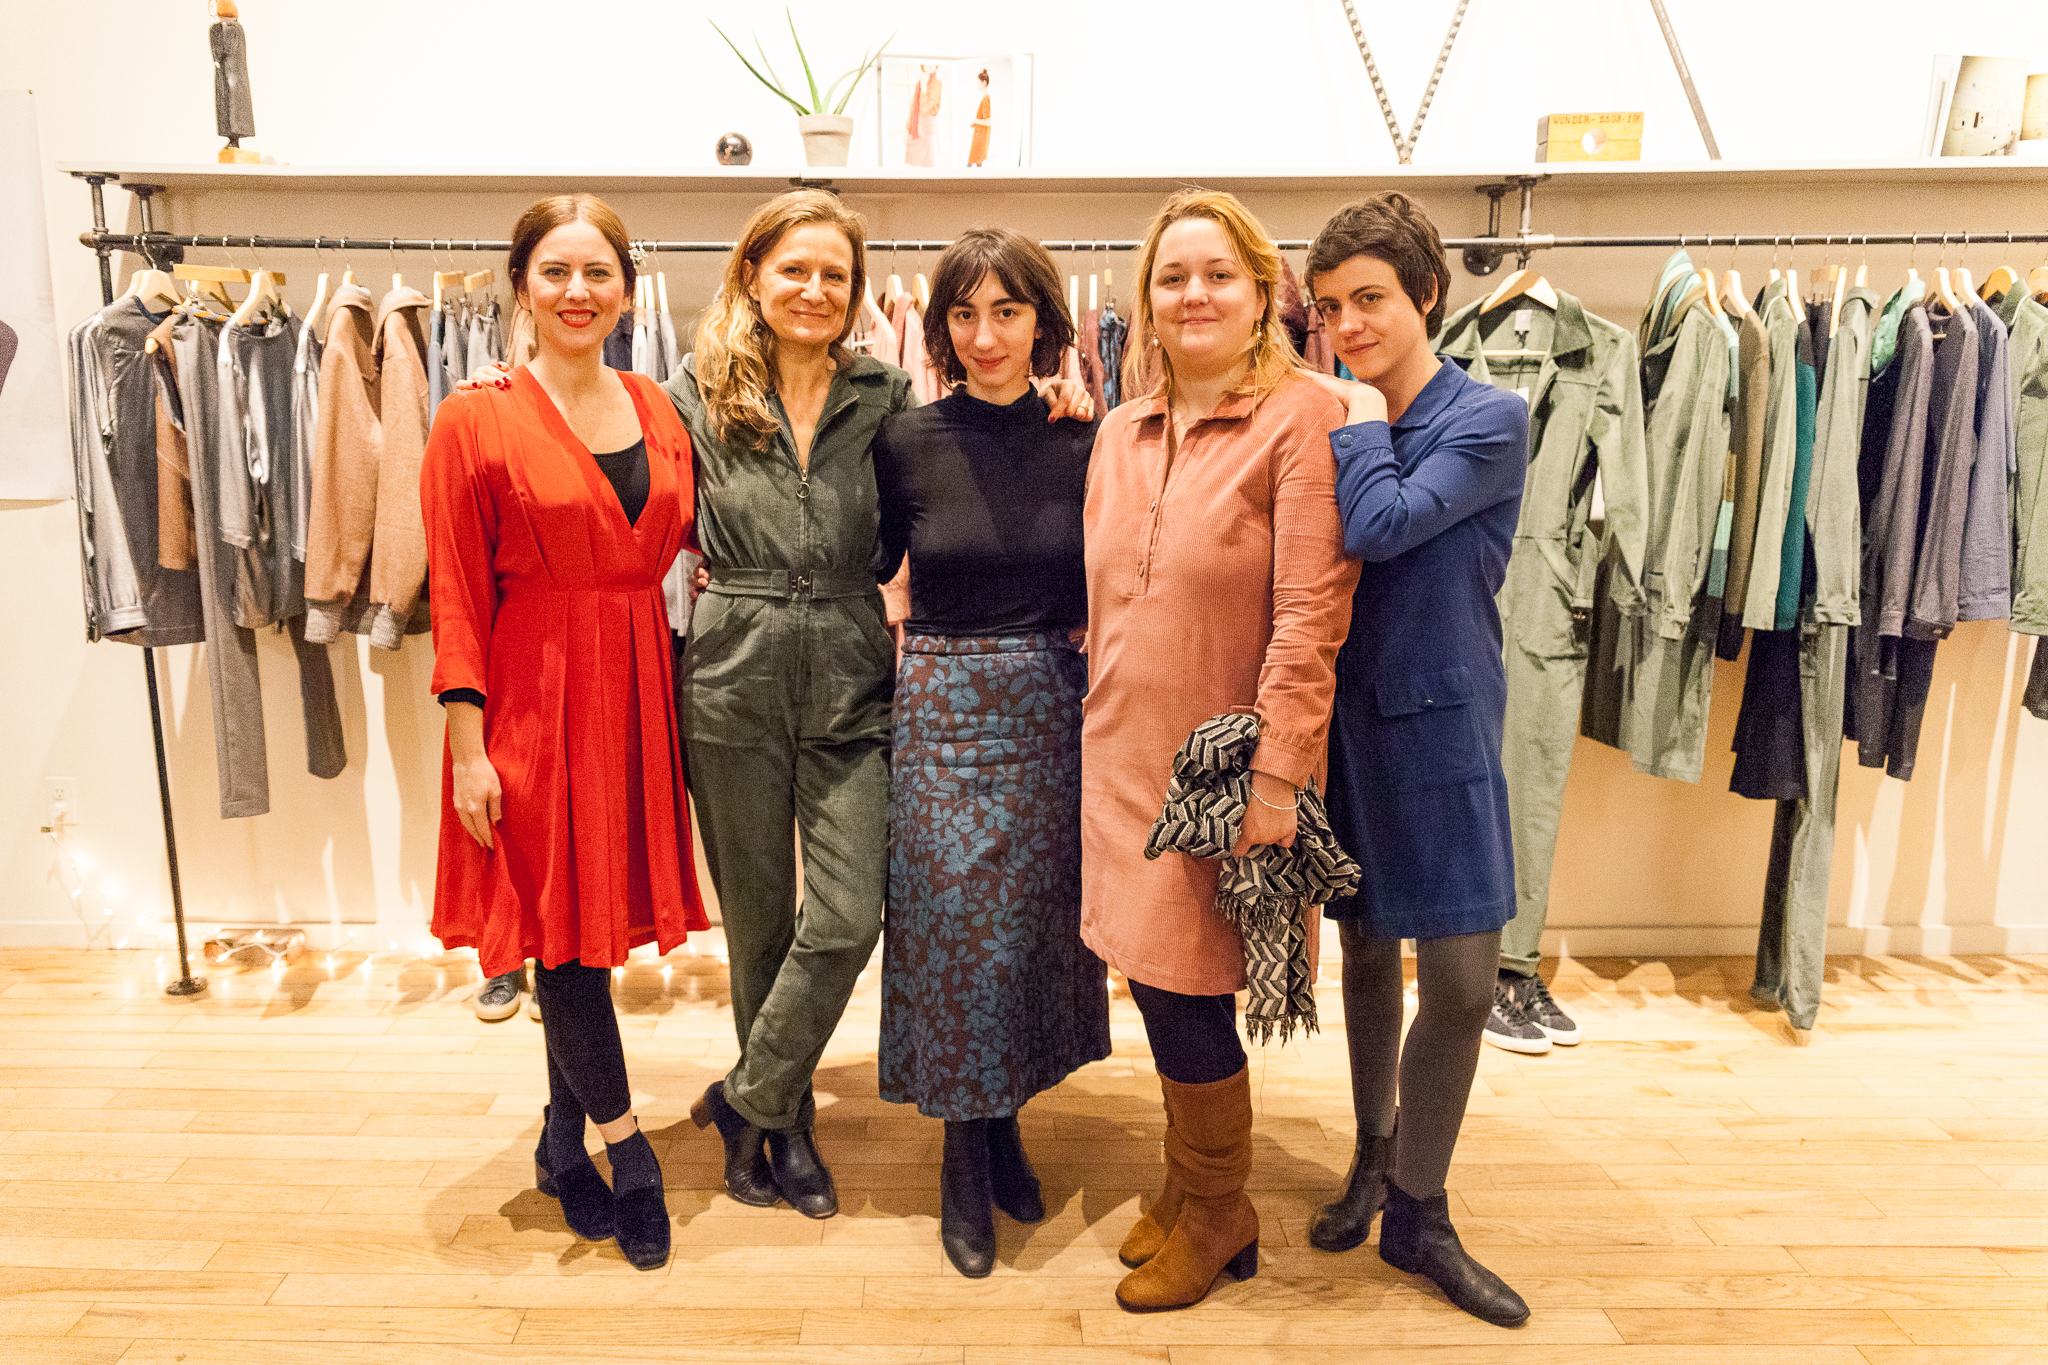 camuglia_anne-willi-holiday-party-nyc-2018_0105_2048.jpg